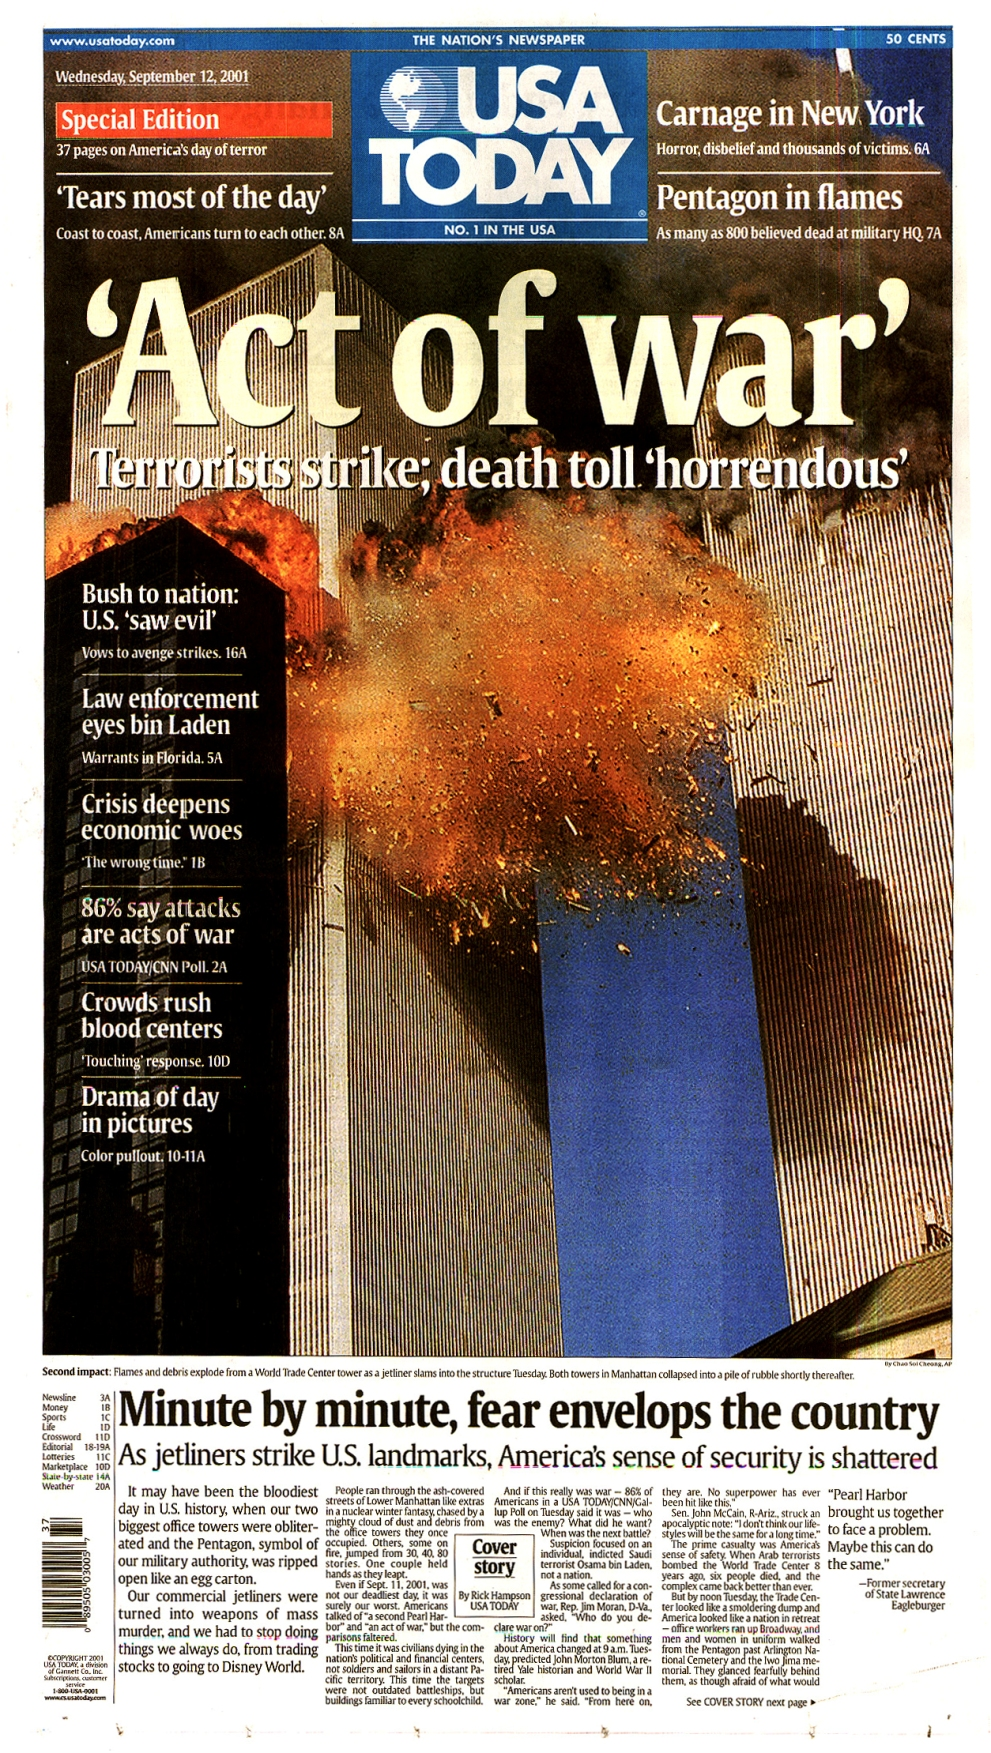 essay on wtc There have been numerous reports detailing the cause of the world trade center tower collapse on september 11, 2001 most have provided qualitative explanations however, simple quantitative analyses show that some common conclusions are incorrect for example, the steel could not melt in these flames and there was more structural damage than.